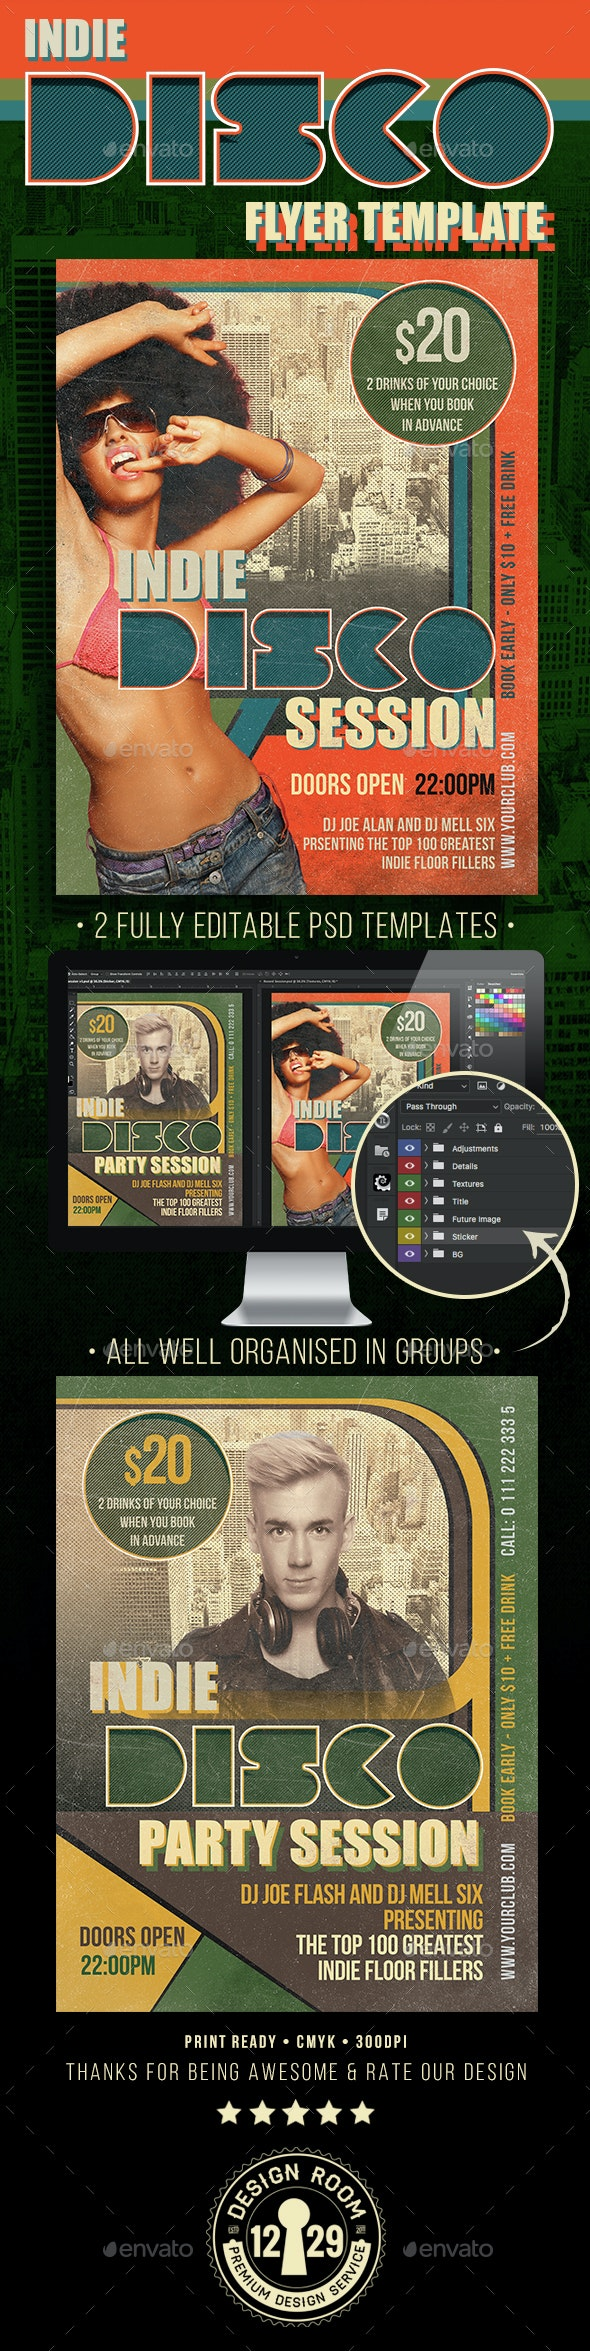 Indie Disco Session Flyer Template - Clubs & Parties Events